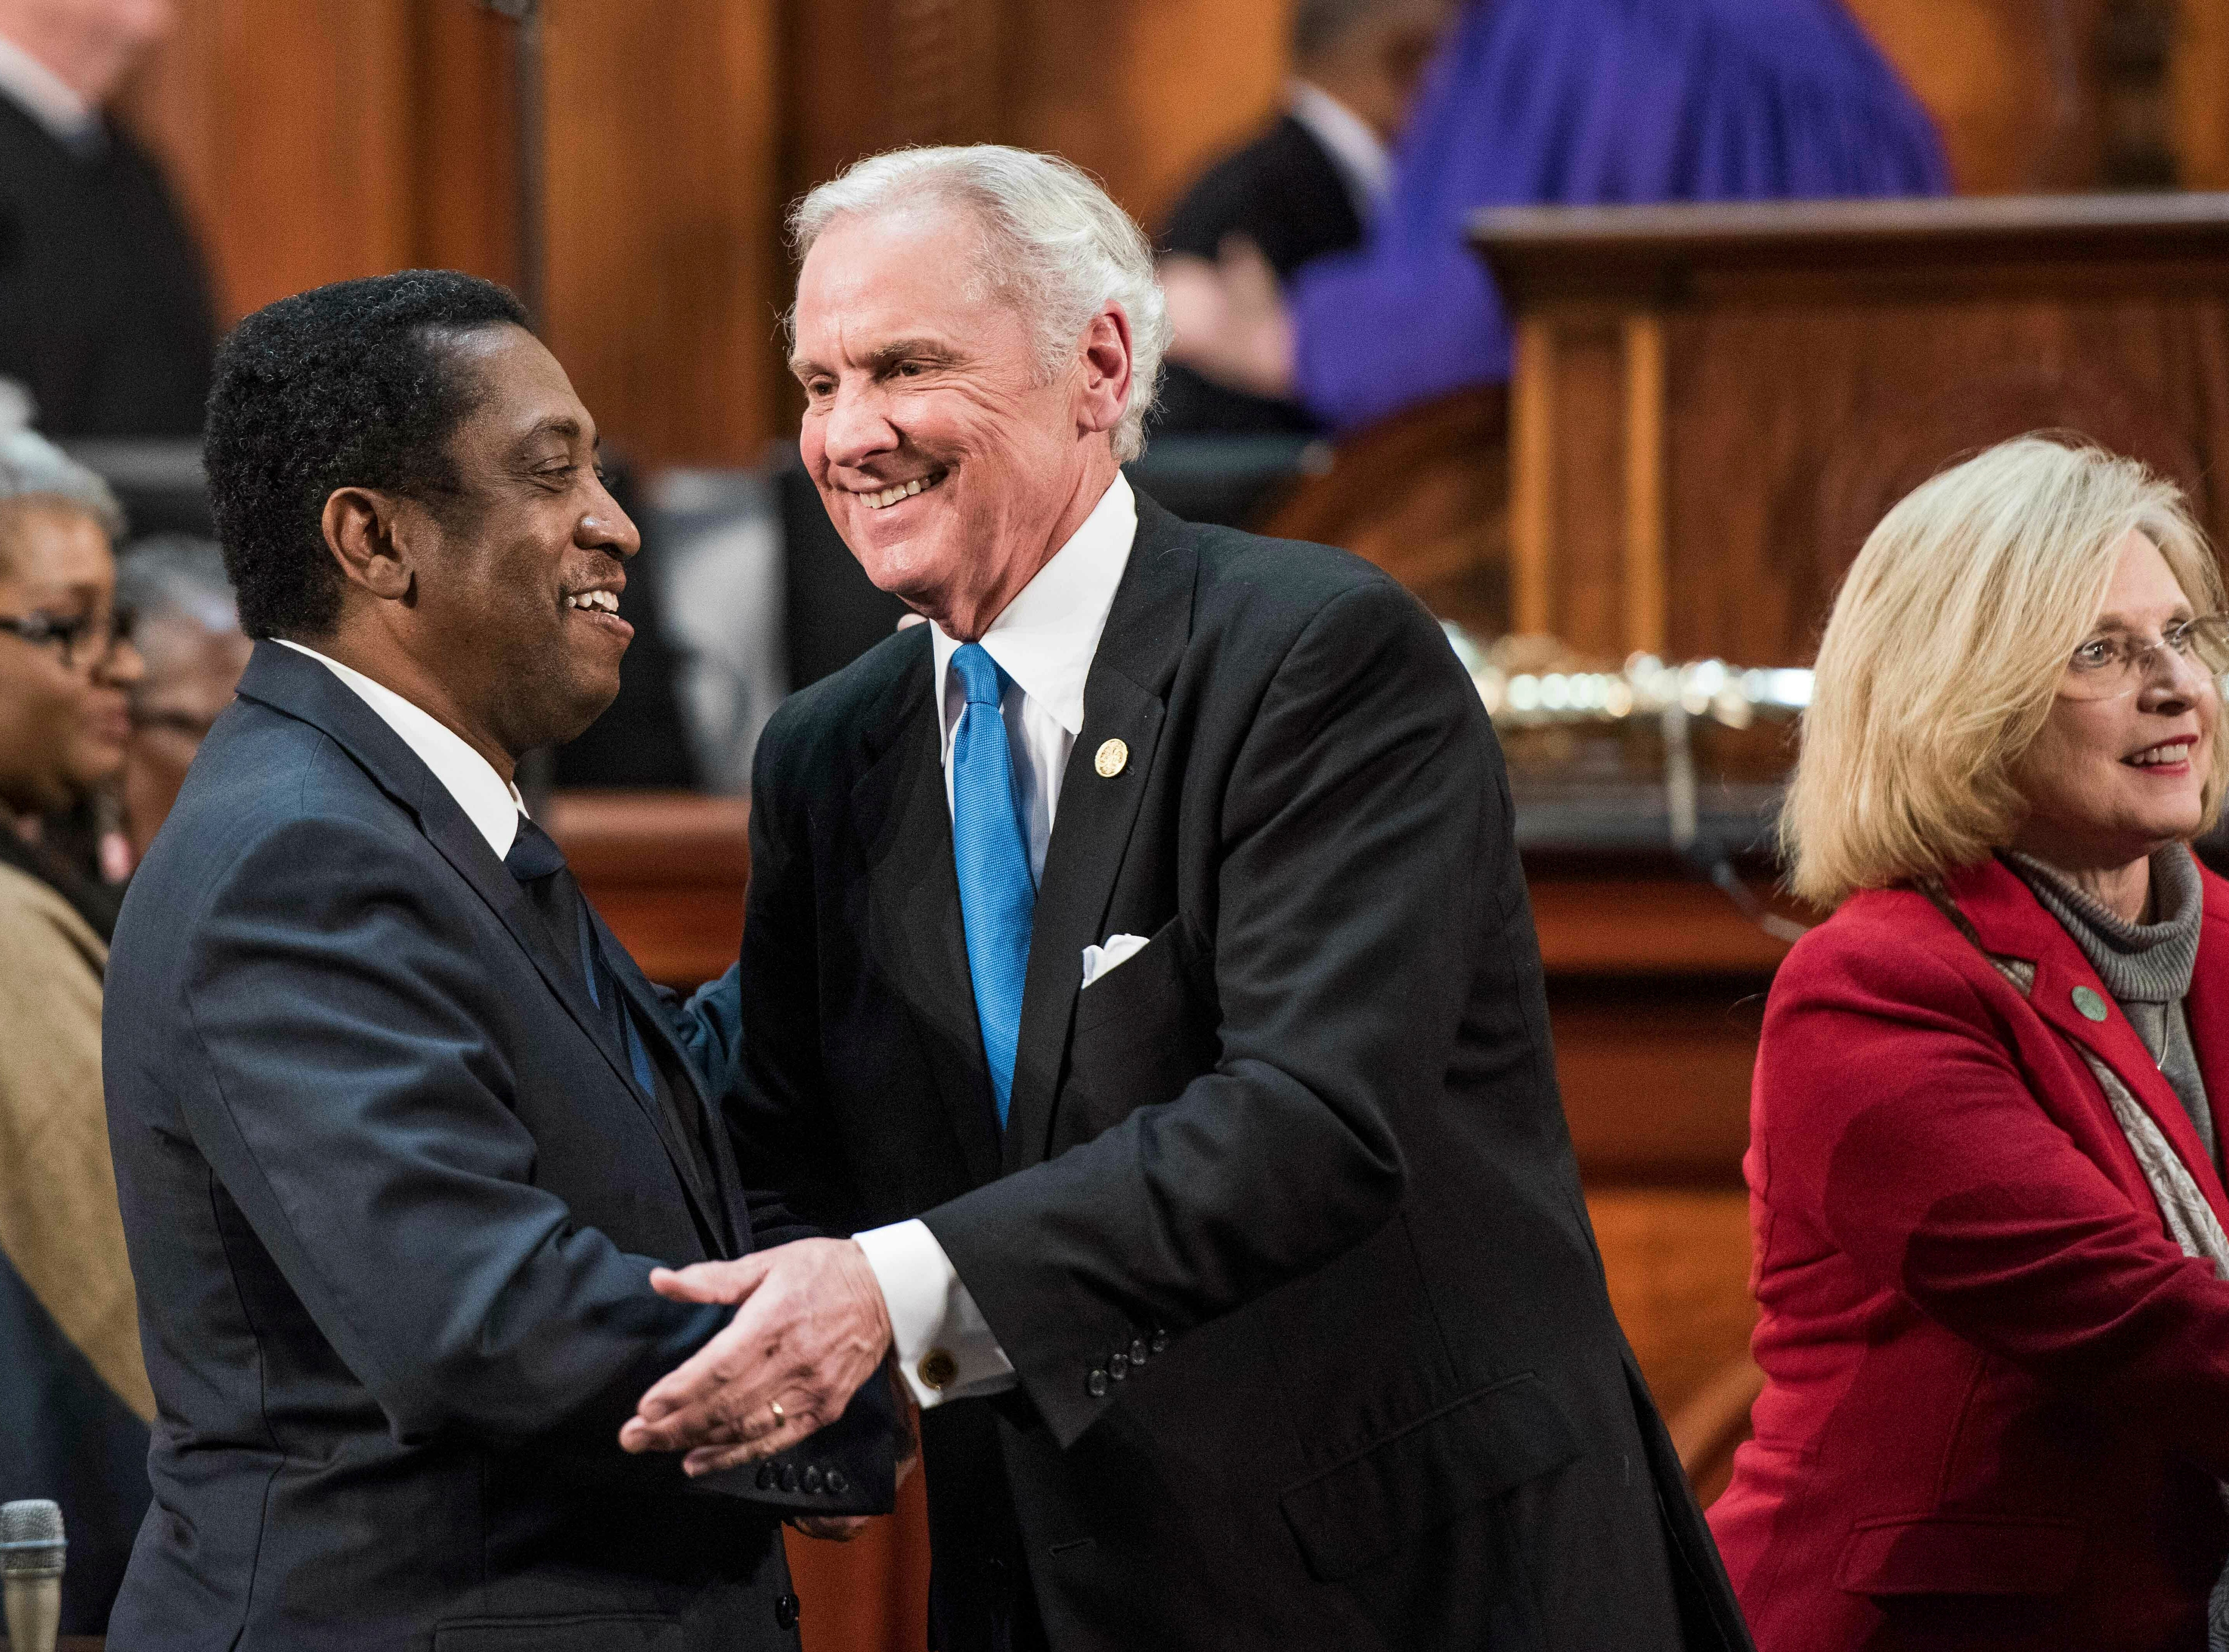 South Carolina Gov. Henry McMaster greets Rep. Jerry Govan, D-Orangeburg, left, after delivering the State of the State address at the Statehouse, Wednesday, Jan. 23, 2019, in Columbia, S.C. (AP Photo/Sean Rayford)